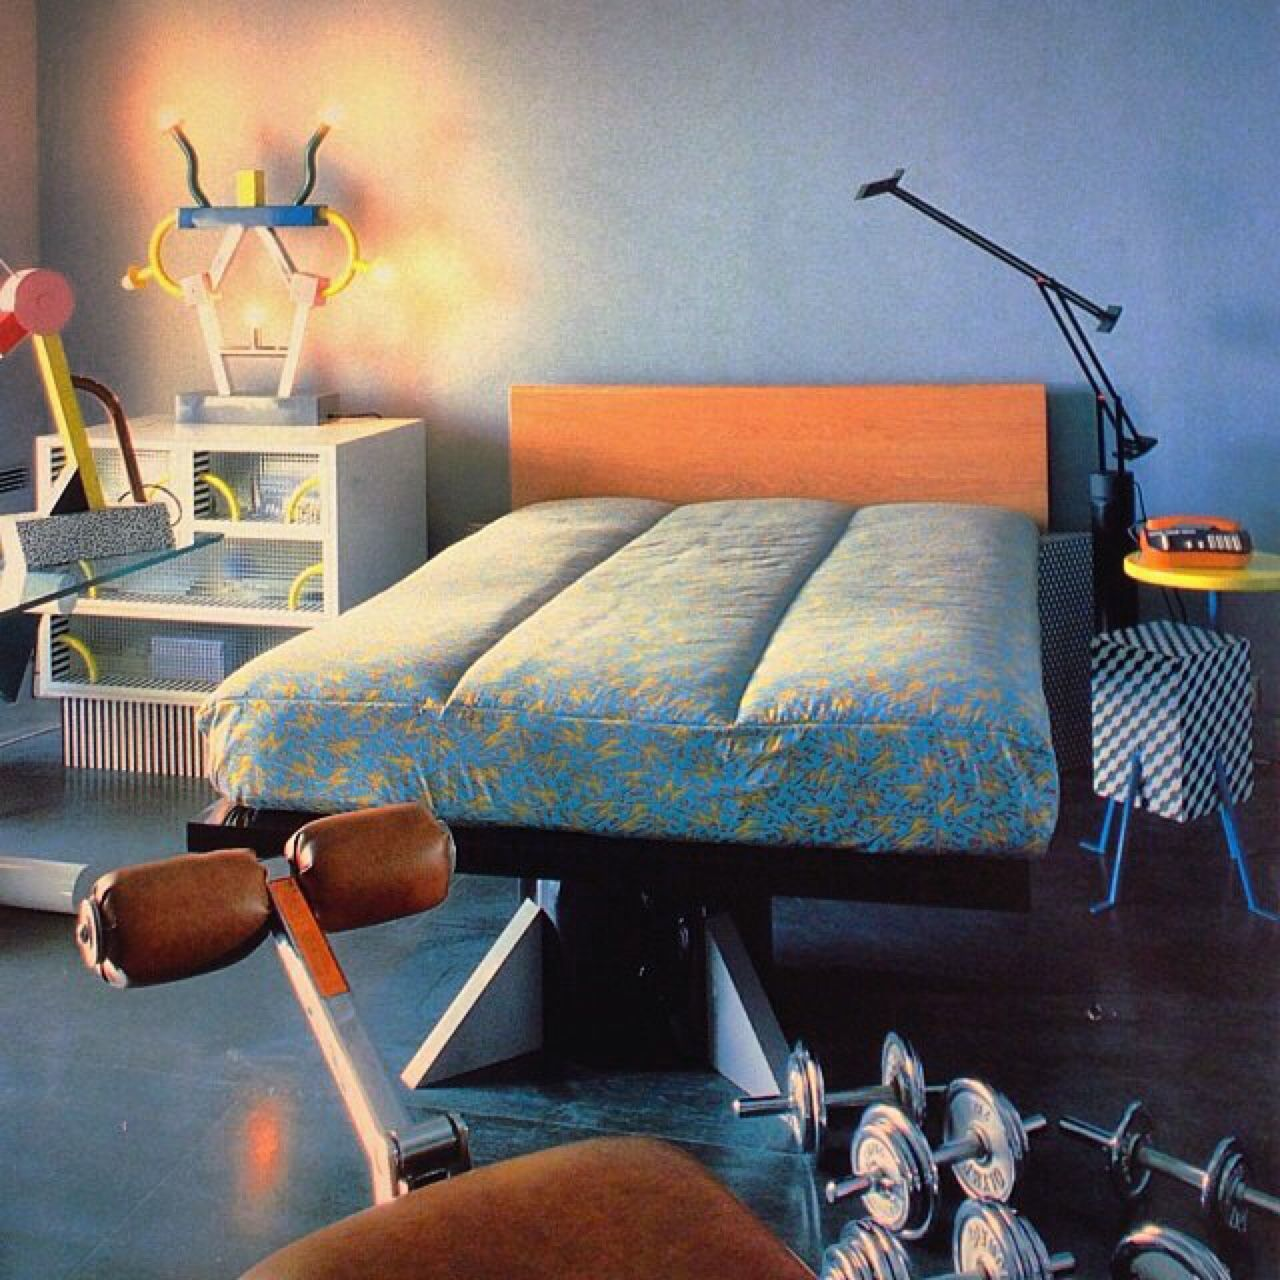 "Bedroom in karl lagerfeld's Monte Carlo flat, ""Italian Style"", 1985 http://thetriumphofpostmodernism.tumblr.com"